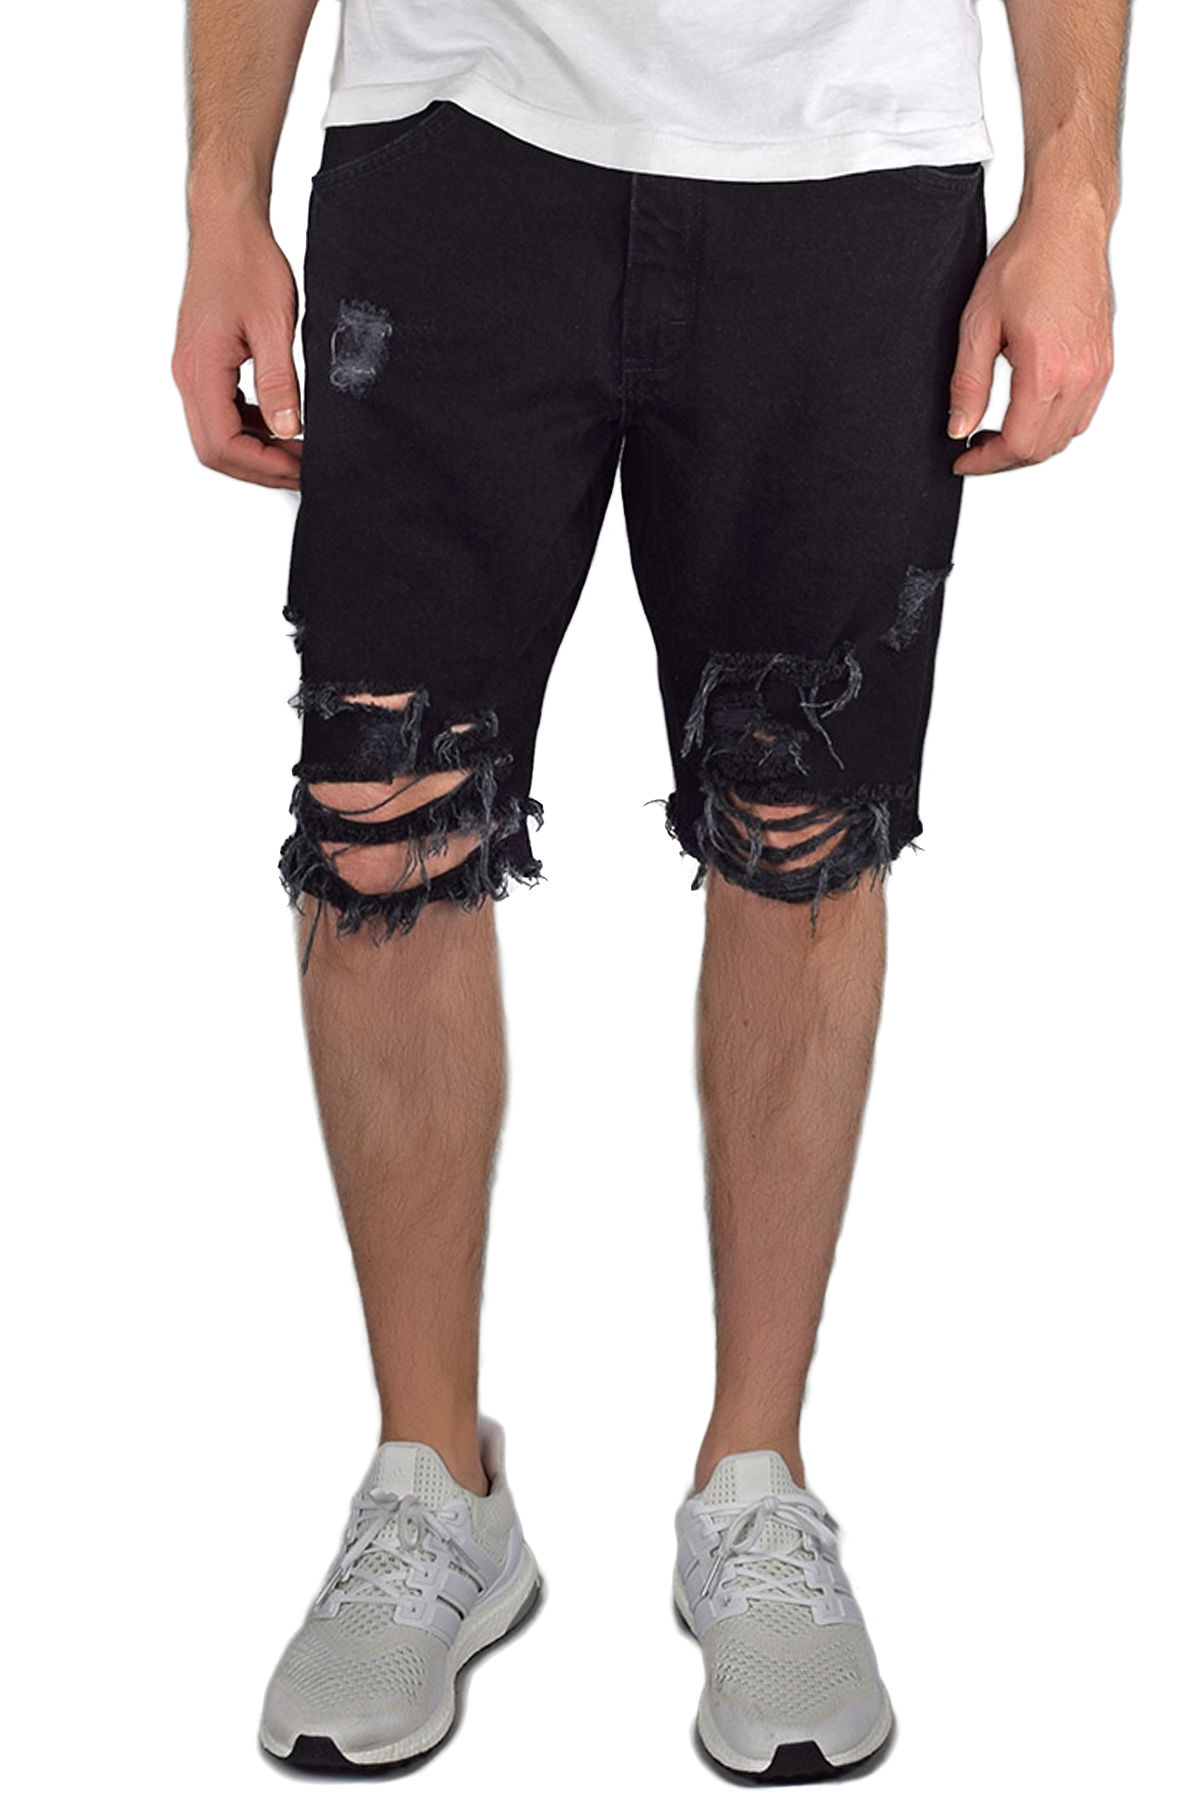 The Ripped Jean Shorts in Black